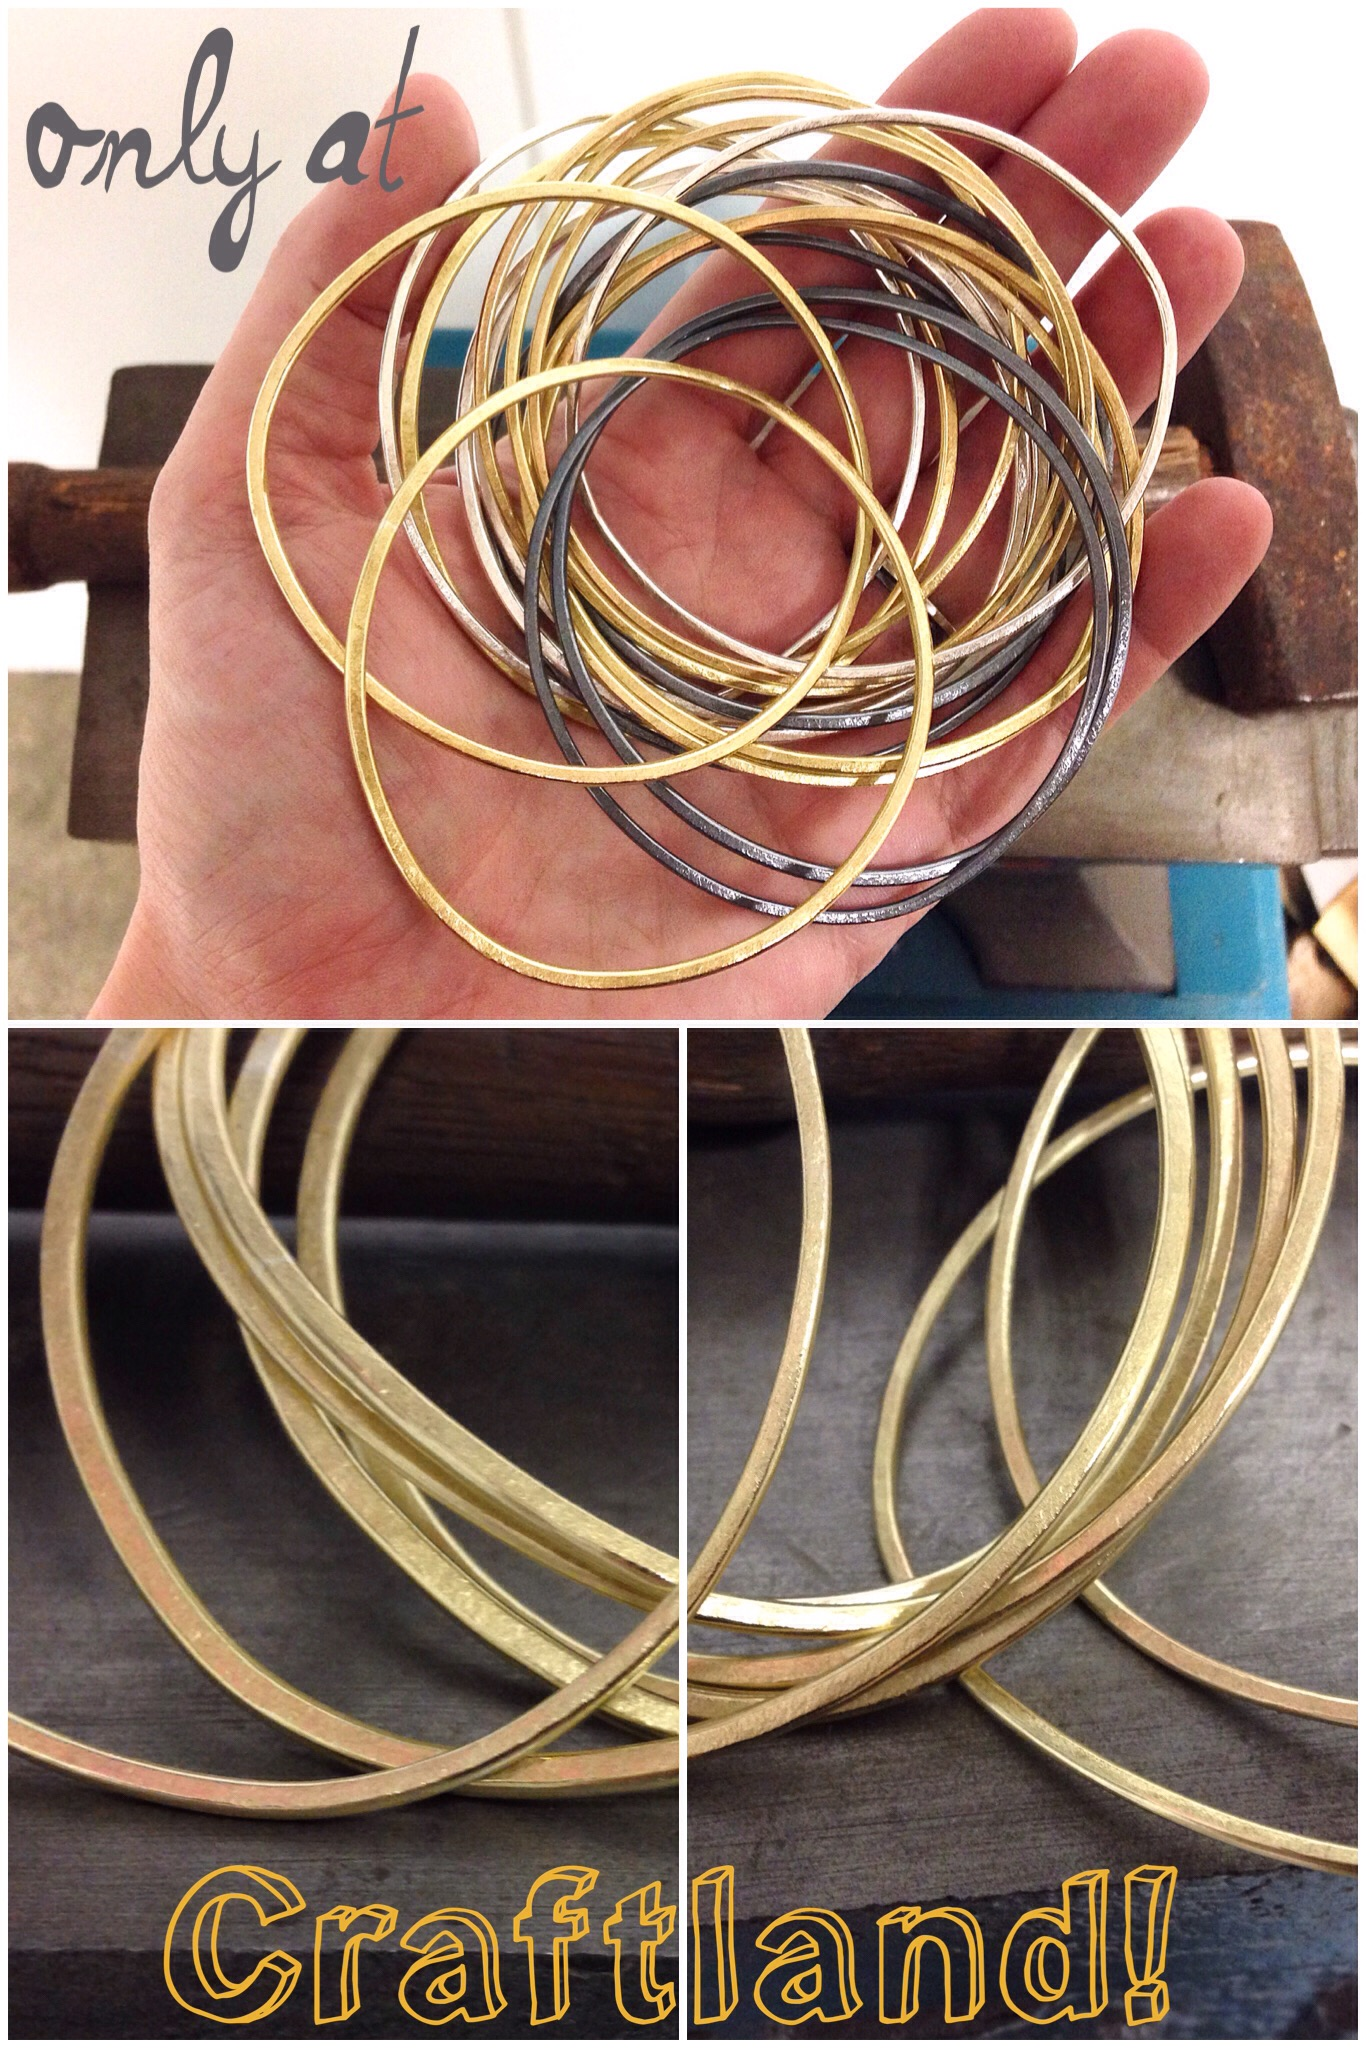 Craftland is the only place you can get brass bangles in person. Try them on, layer 'em up with the silver ones. Have yourself a golden holiday!